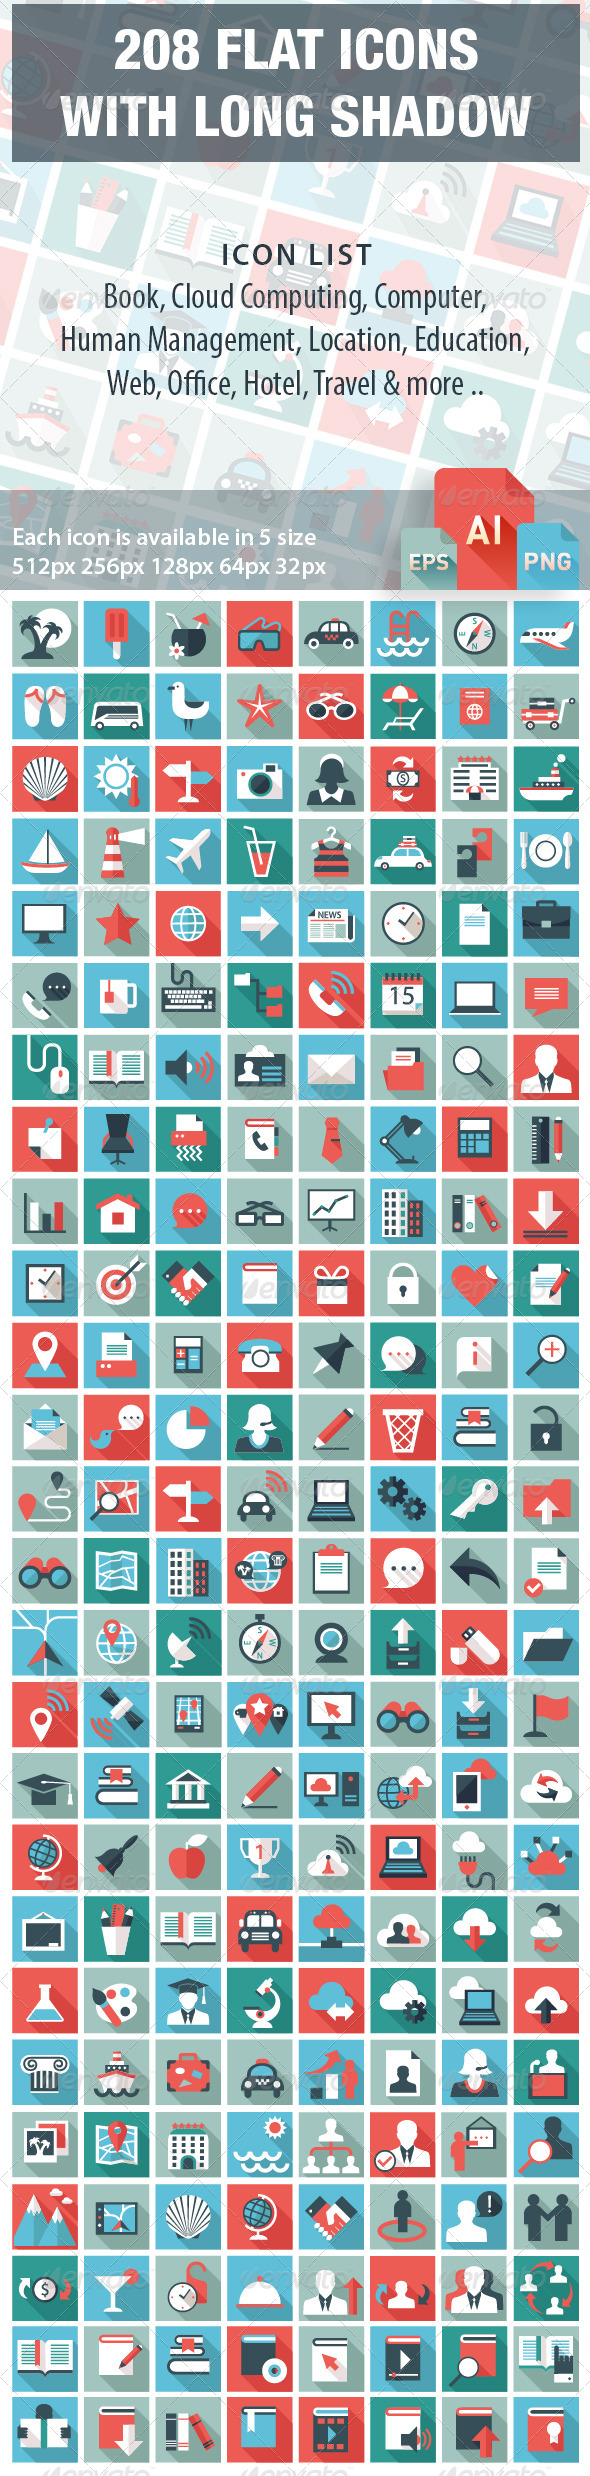 GraphicRiver 208 Long Shadow Flat Icons 7243267